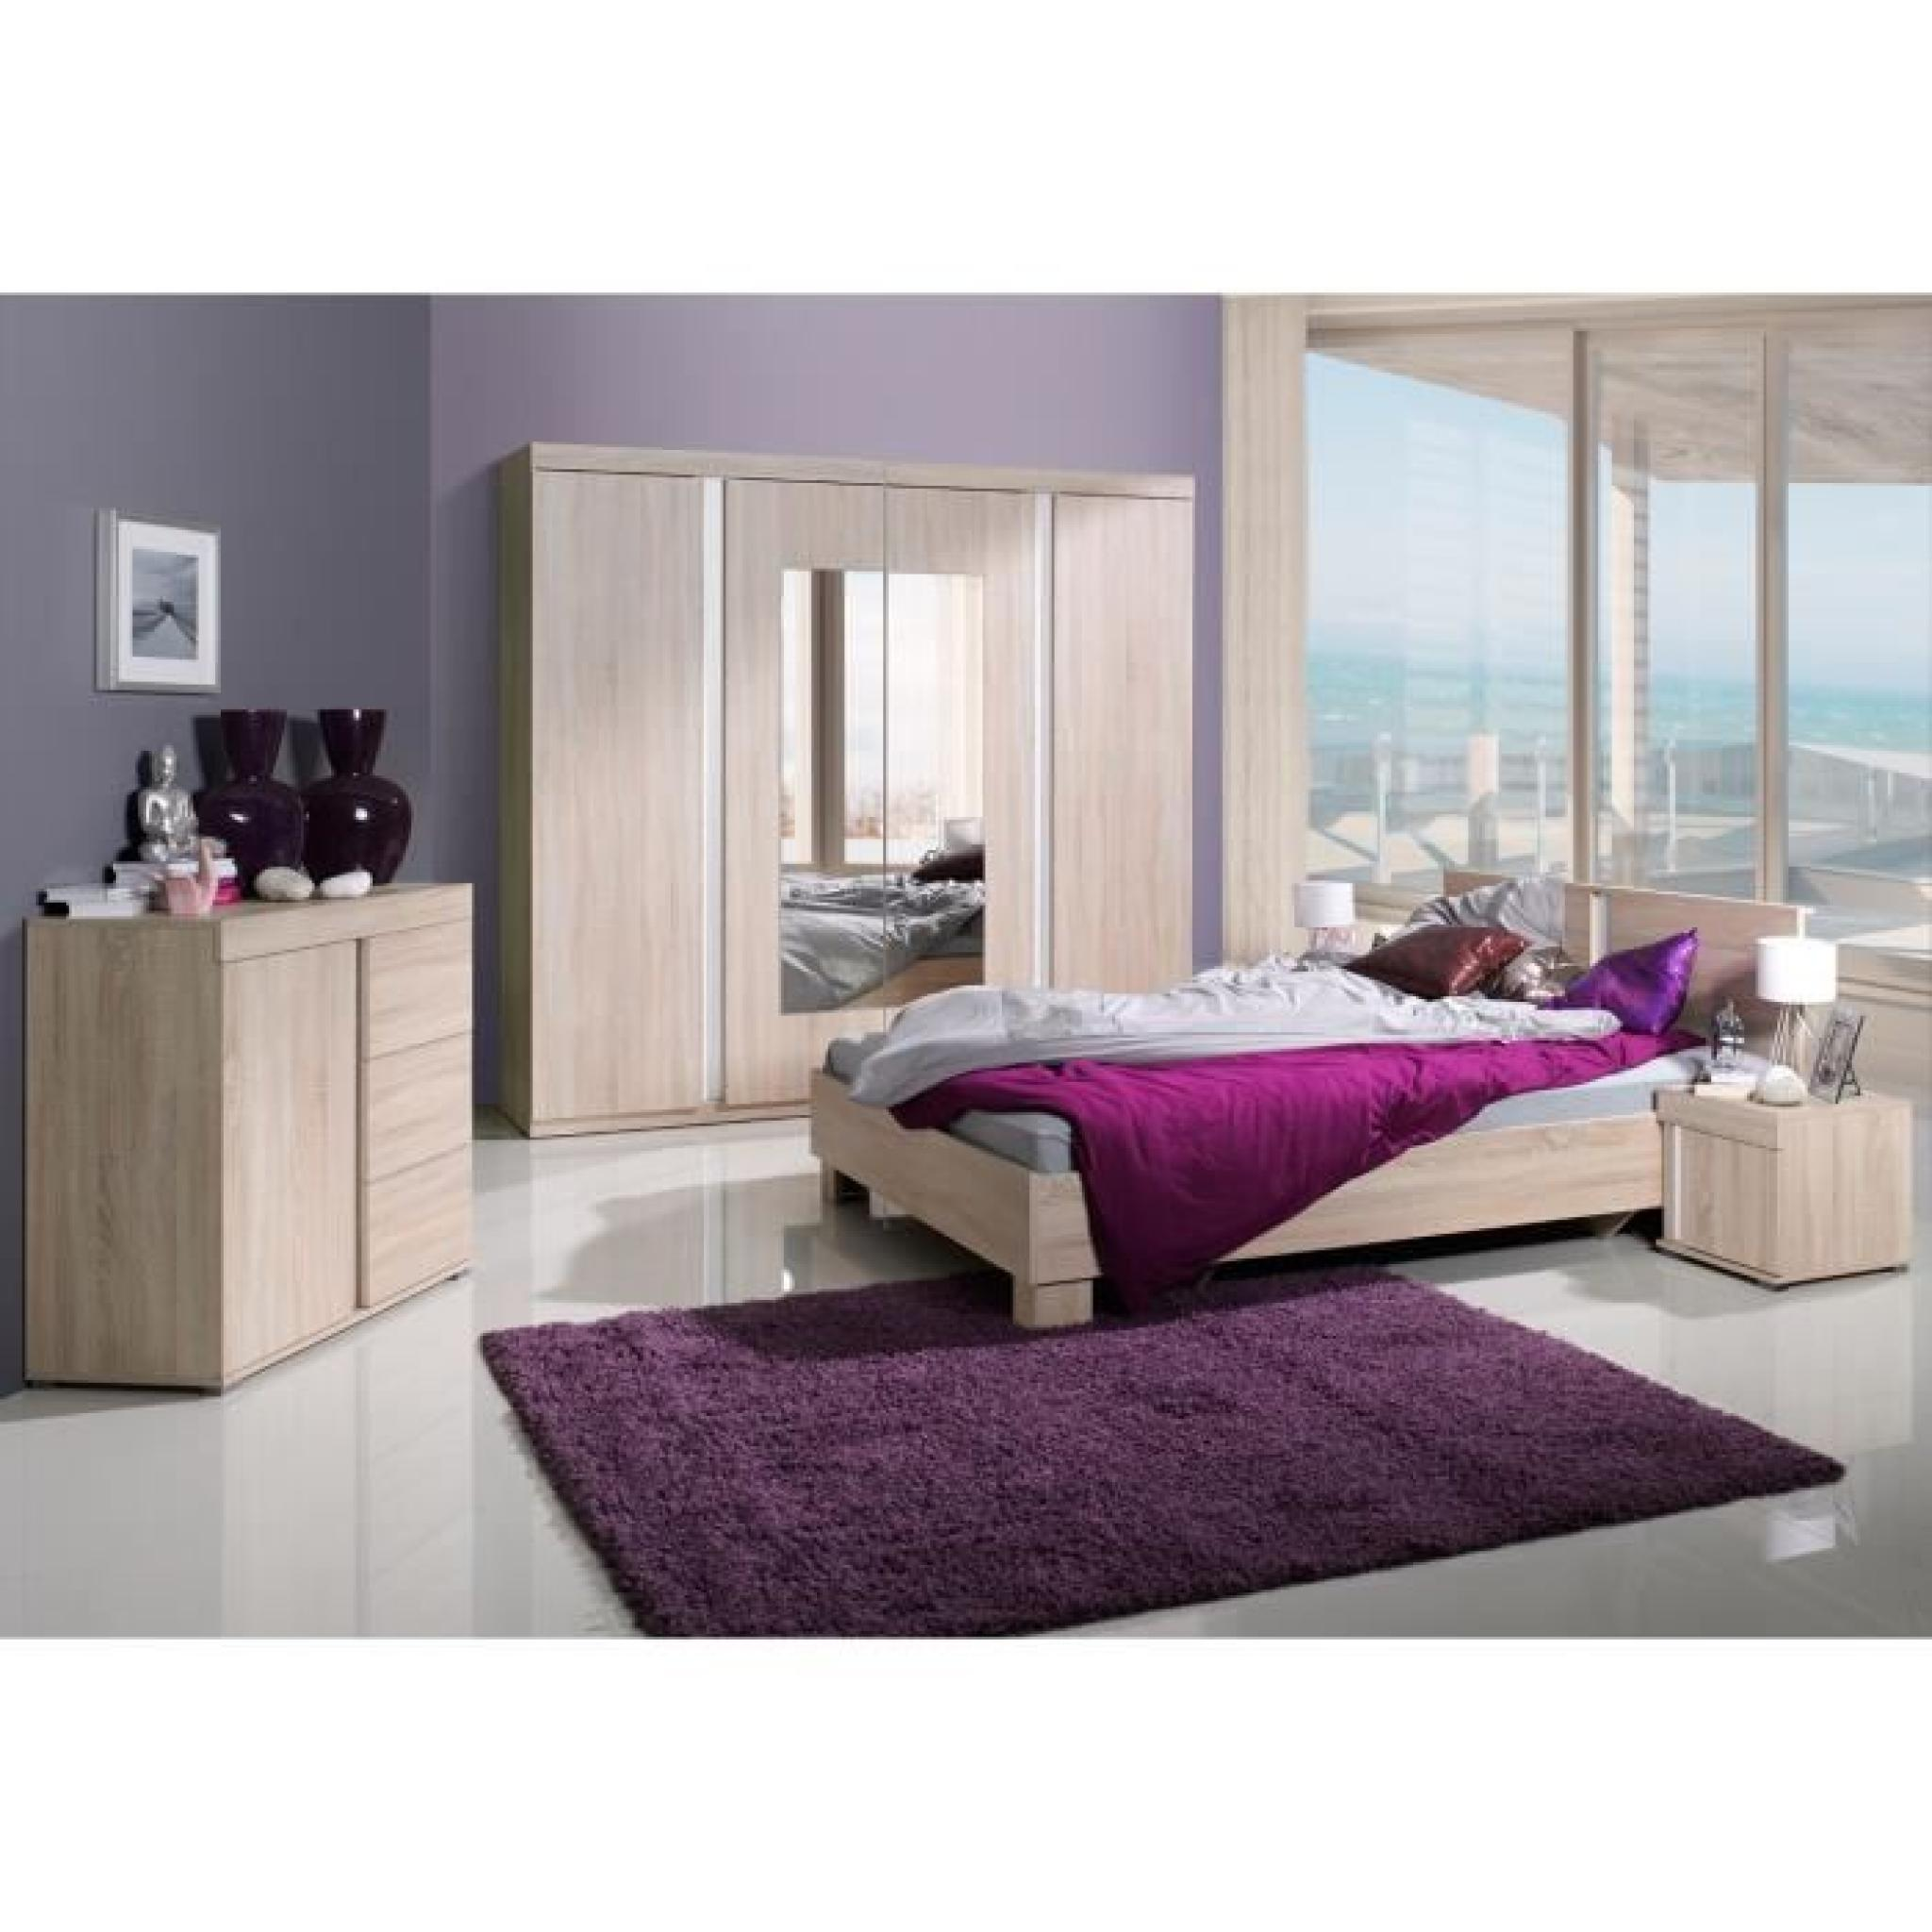 chambre coucher compl te adulte avignon lit armoire chevets commode meuble design en. Black Bedroom Furniture Sets. Home Design Ideas